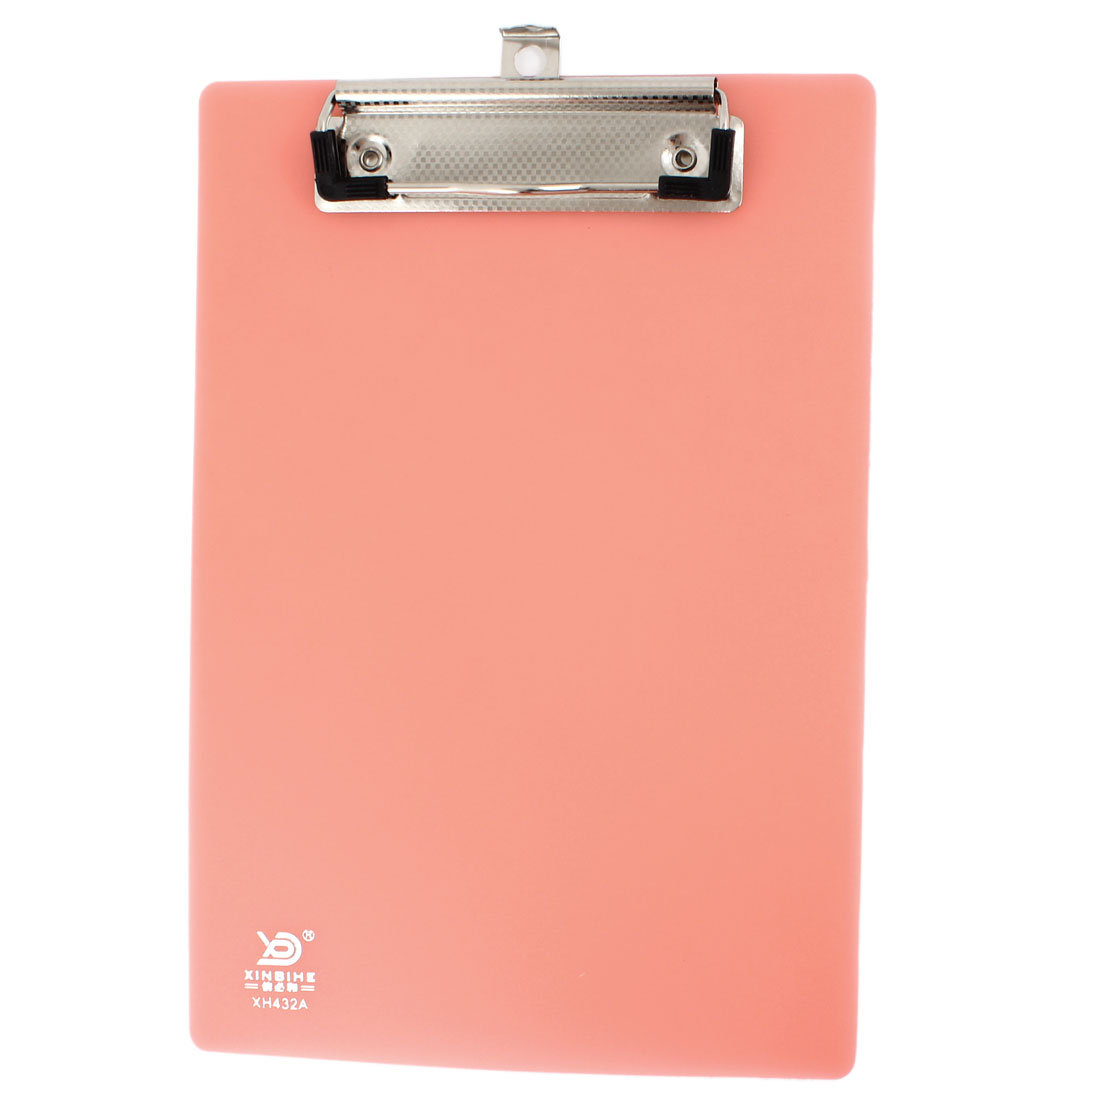 School Plastic A5 Size Document Test Paper Clip Clamp Board Holder Pink